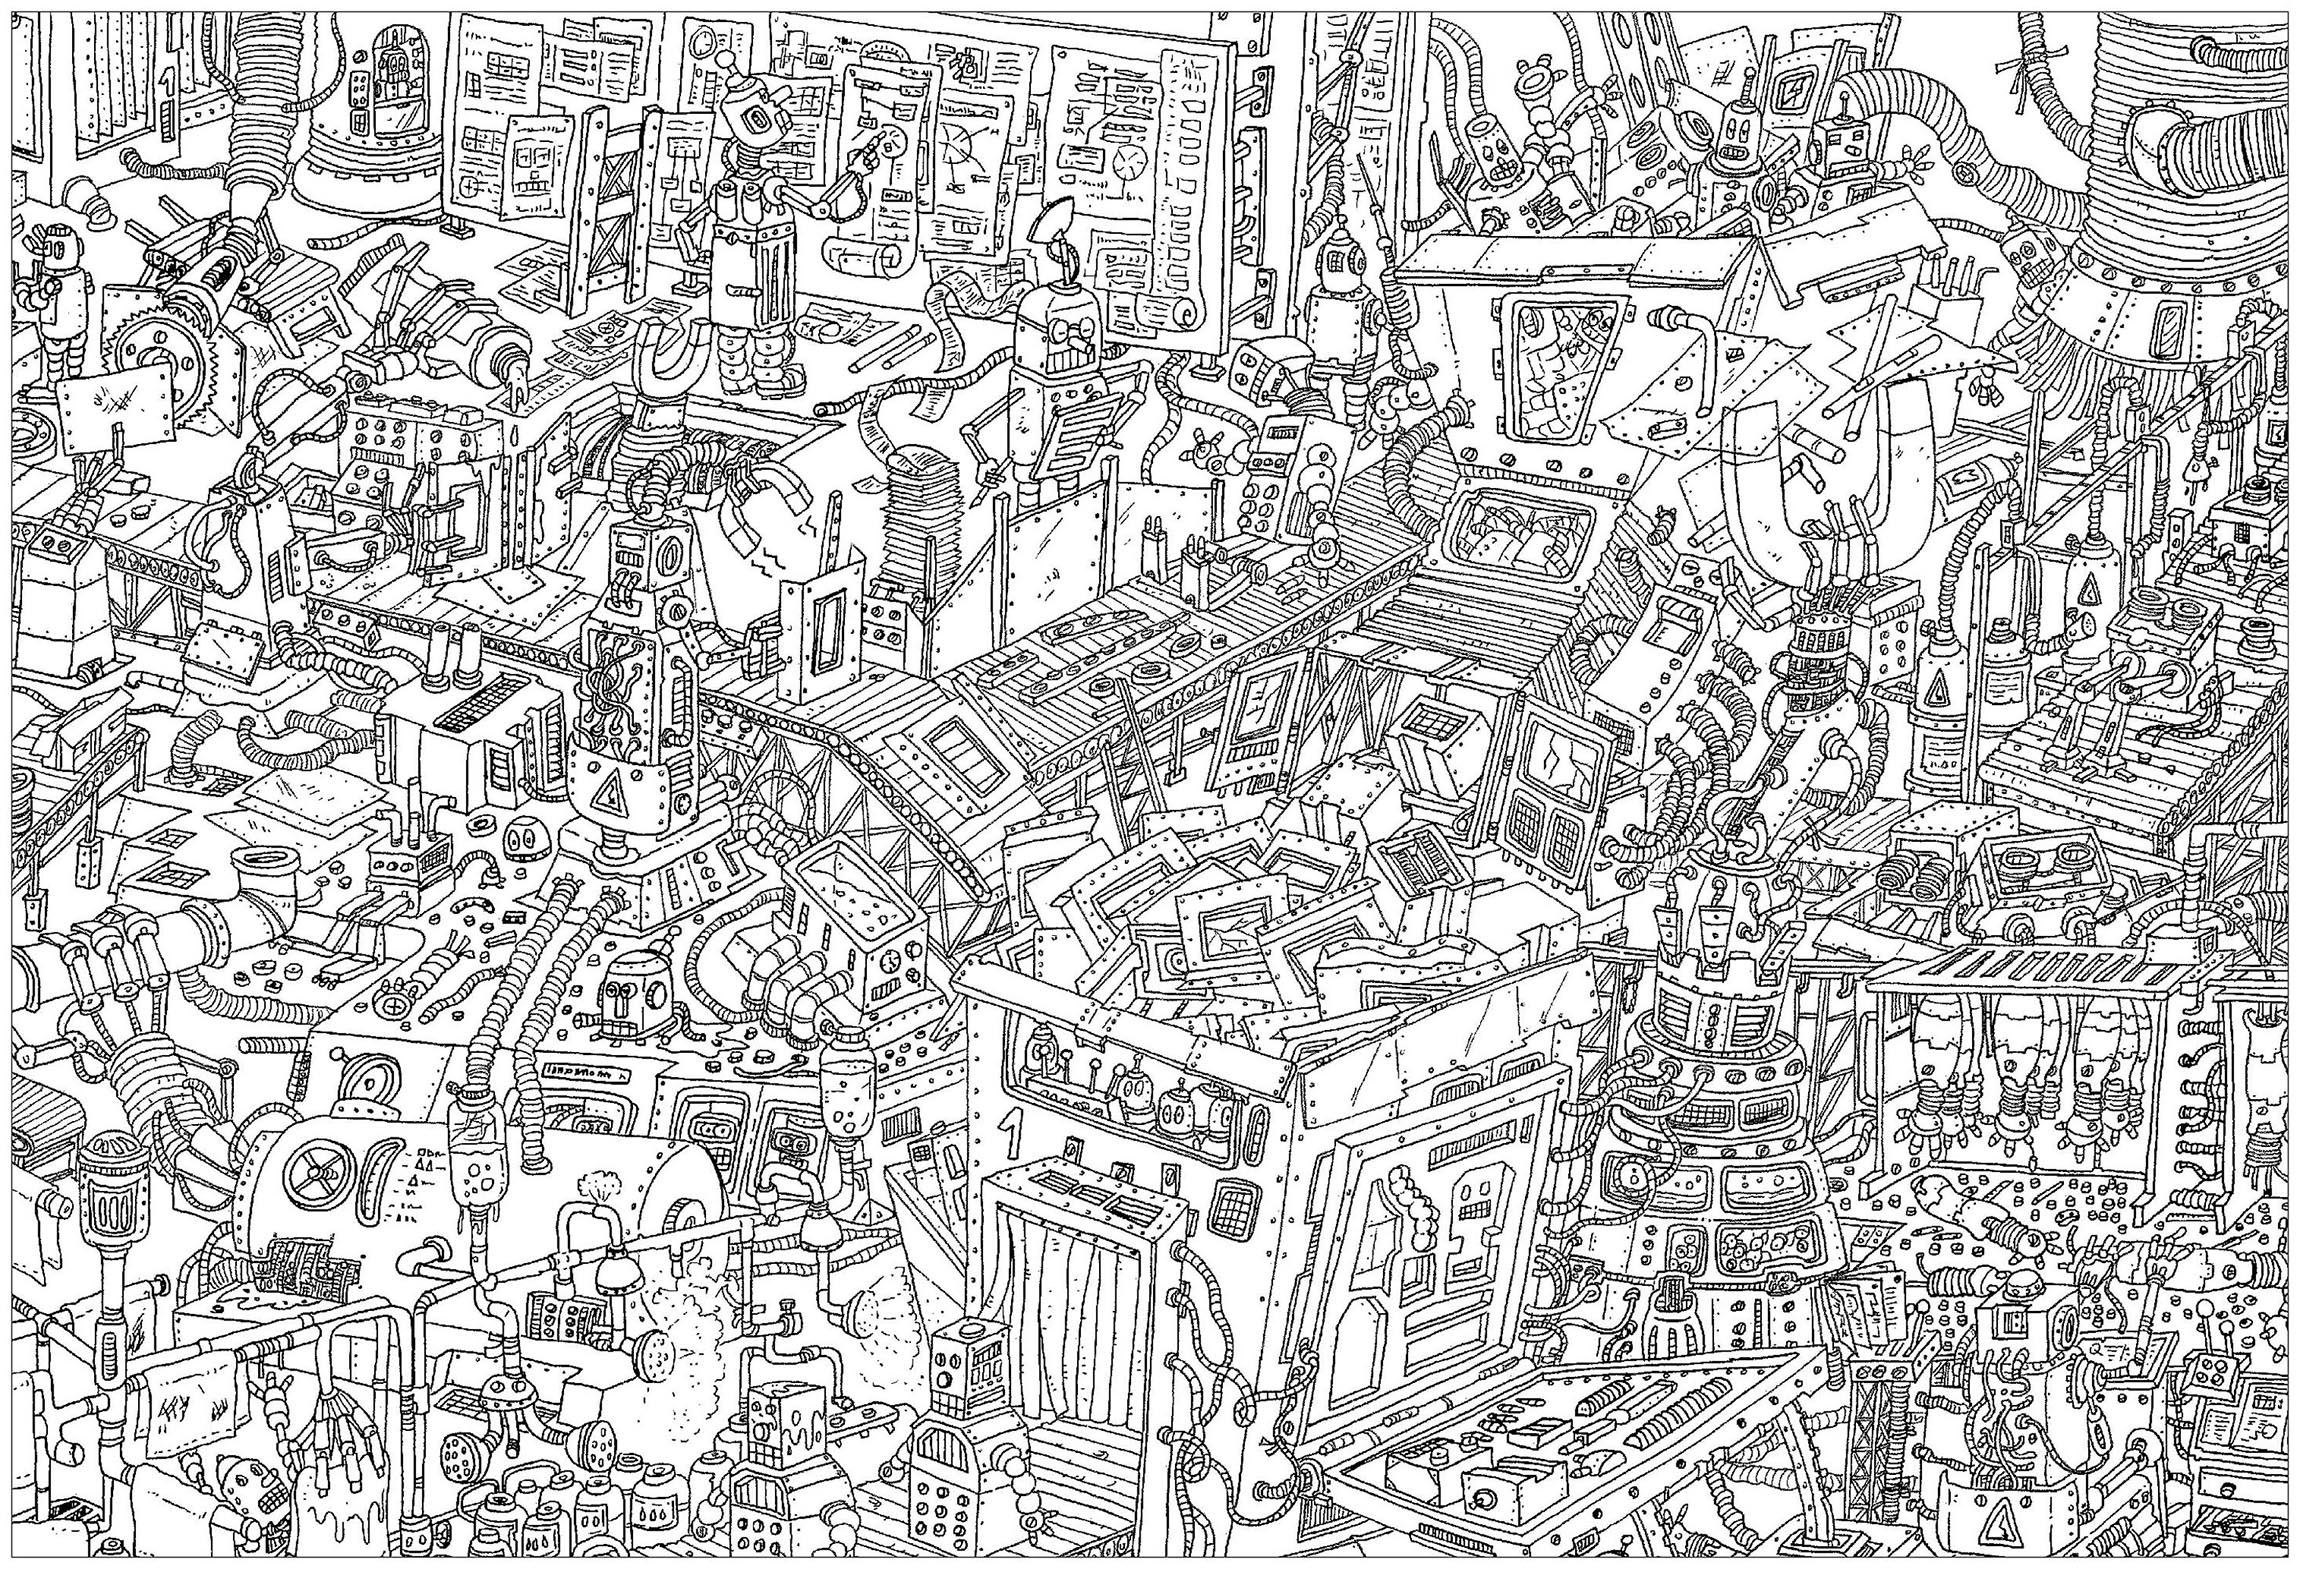 'Robots factory', a complex coloring page, 'Where is Waldo ?' style